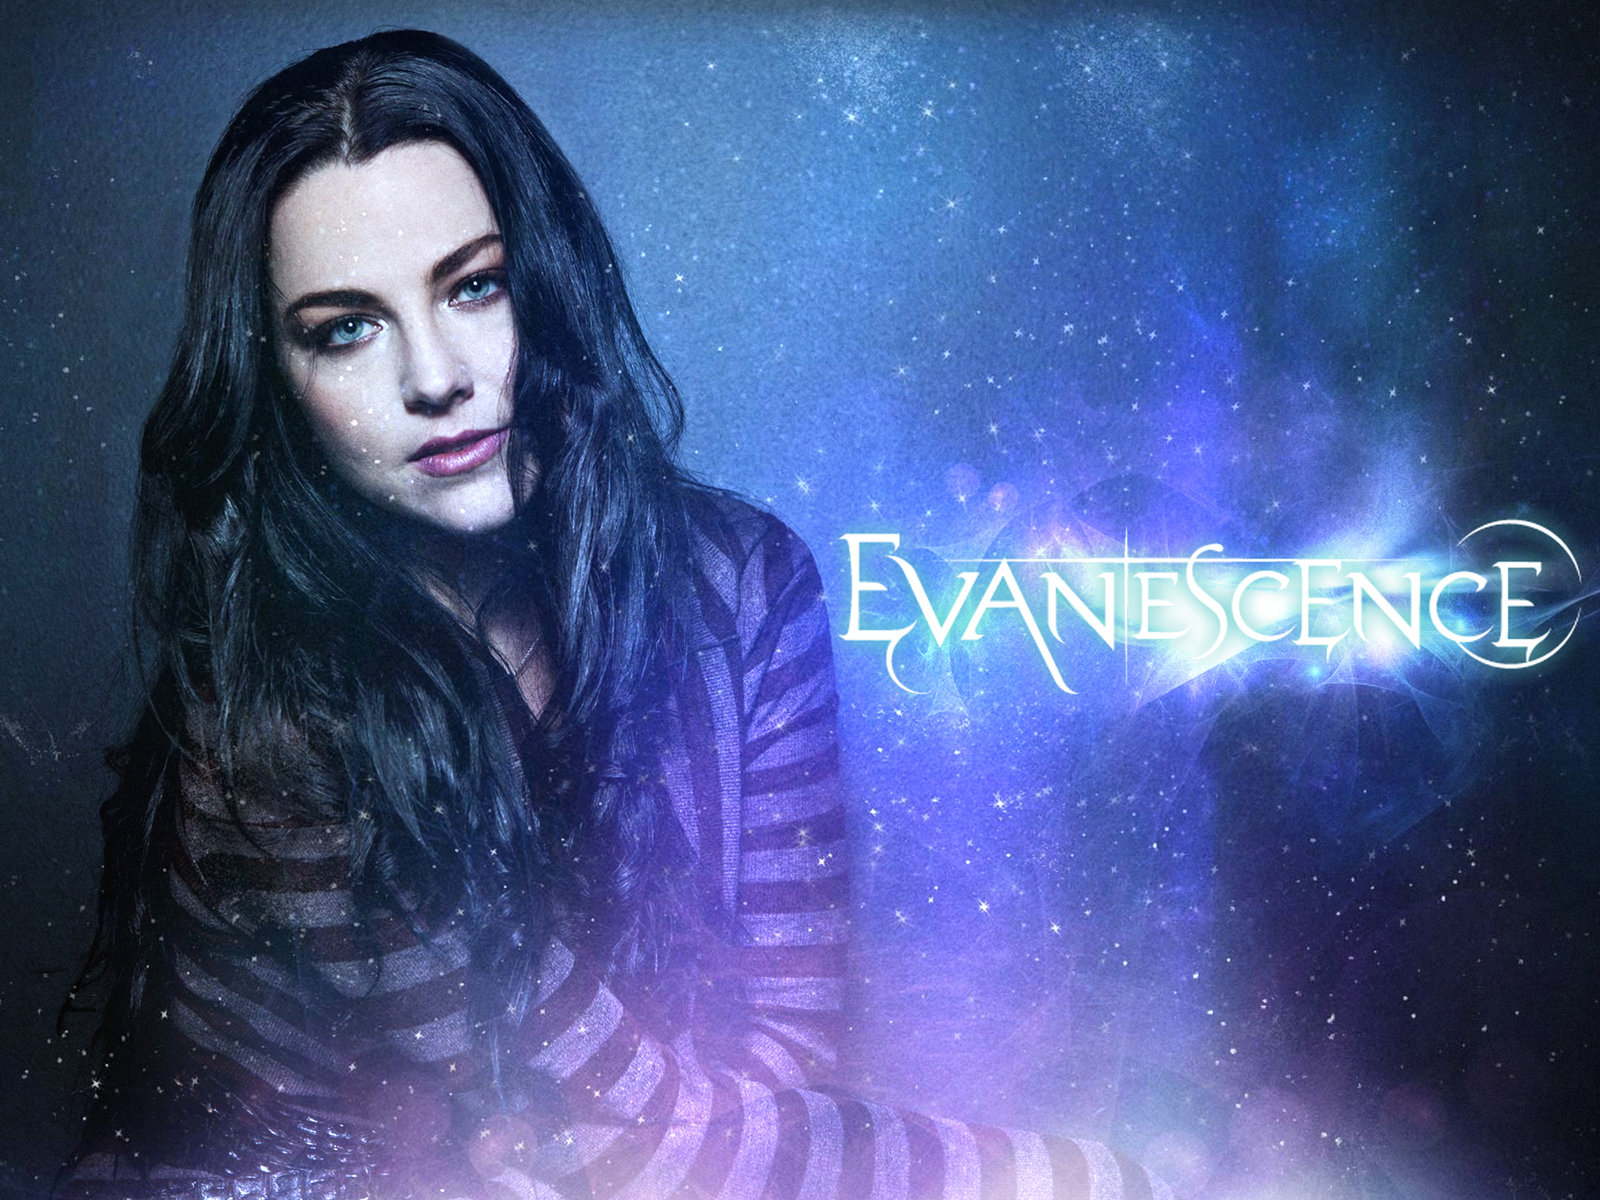 Evanescence Wallpapers likewise Jeep Logo Wallpaper in addition Nirvana Wallpapers furthermore Lavidasegunyai blogspot likewise  on evanescence 18723